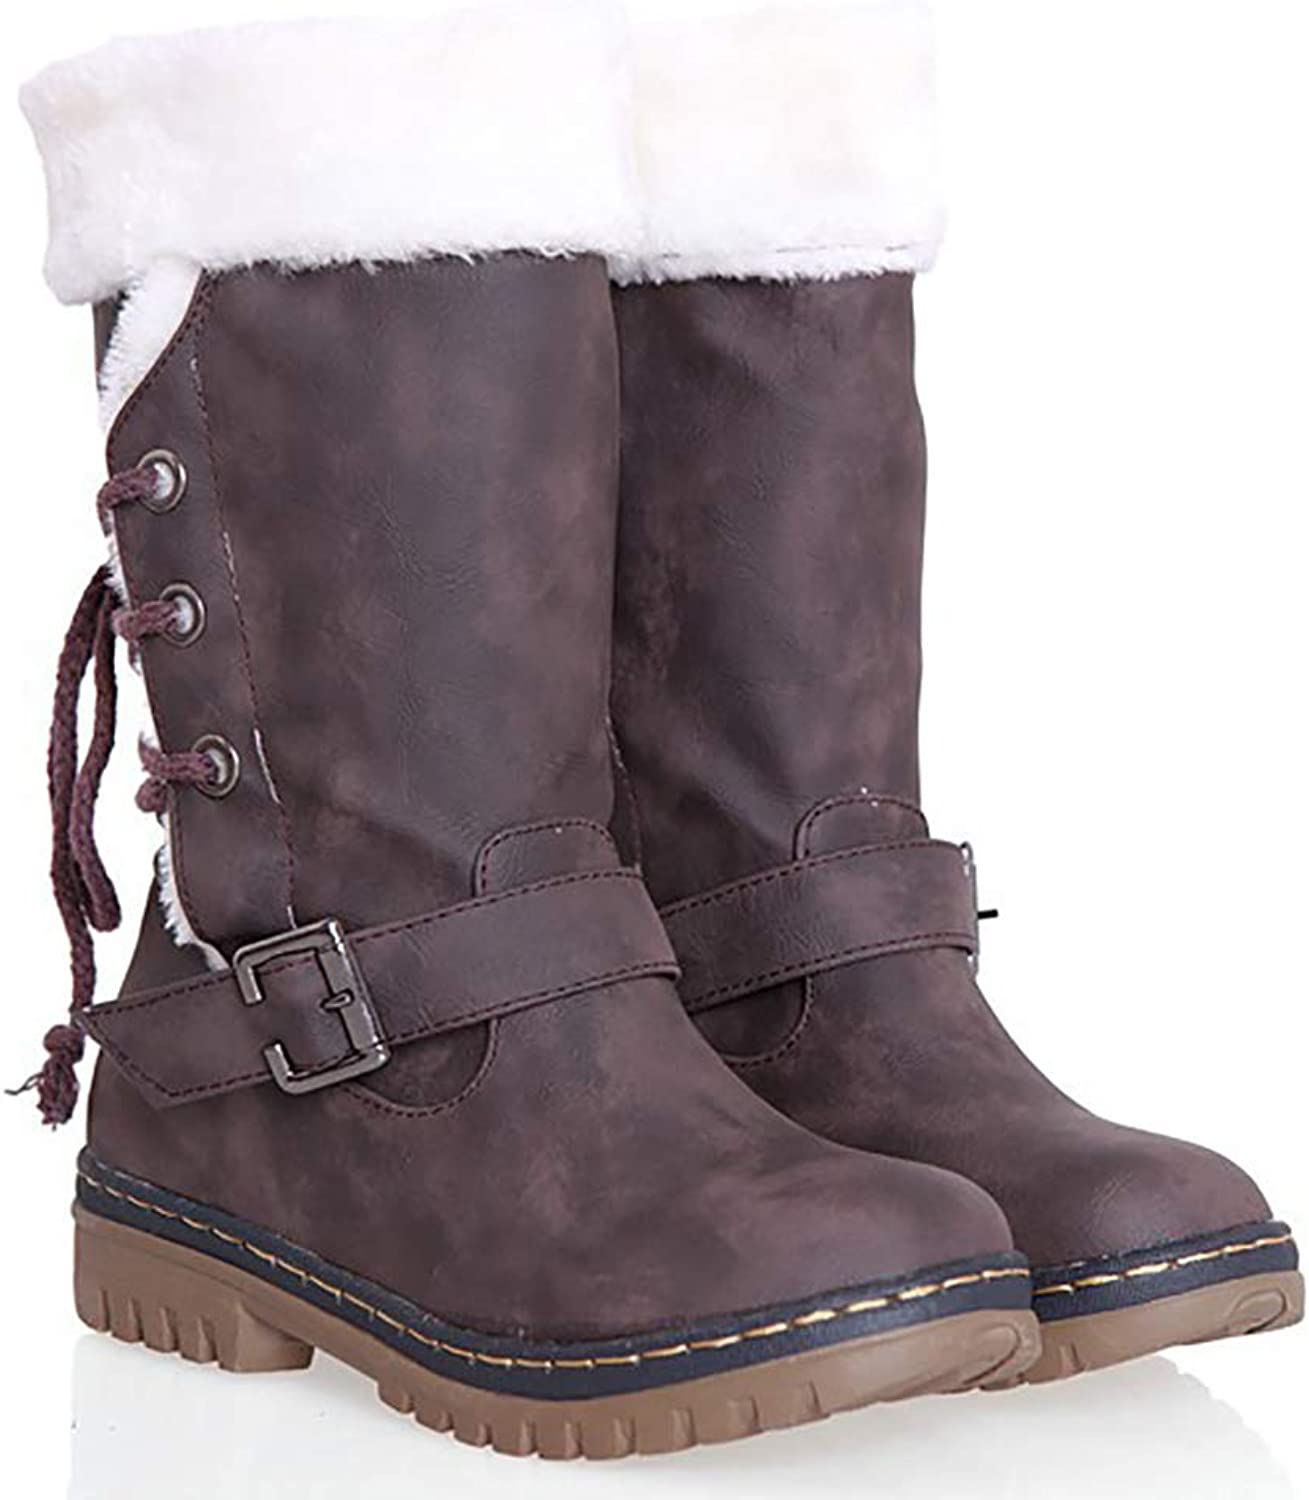 Pevor Women's Winter Outdoor shoes Faux Leather Woolen Lining Lace Up Mid Calf Riding Warm Snow Suede Boots